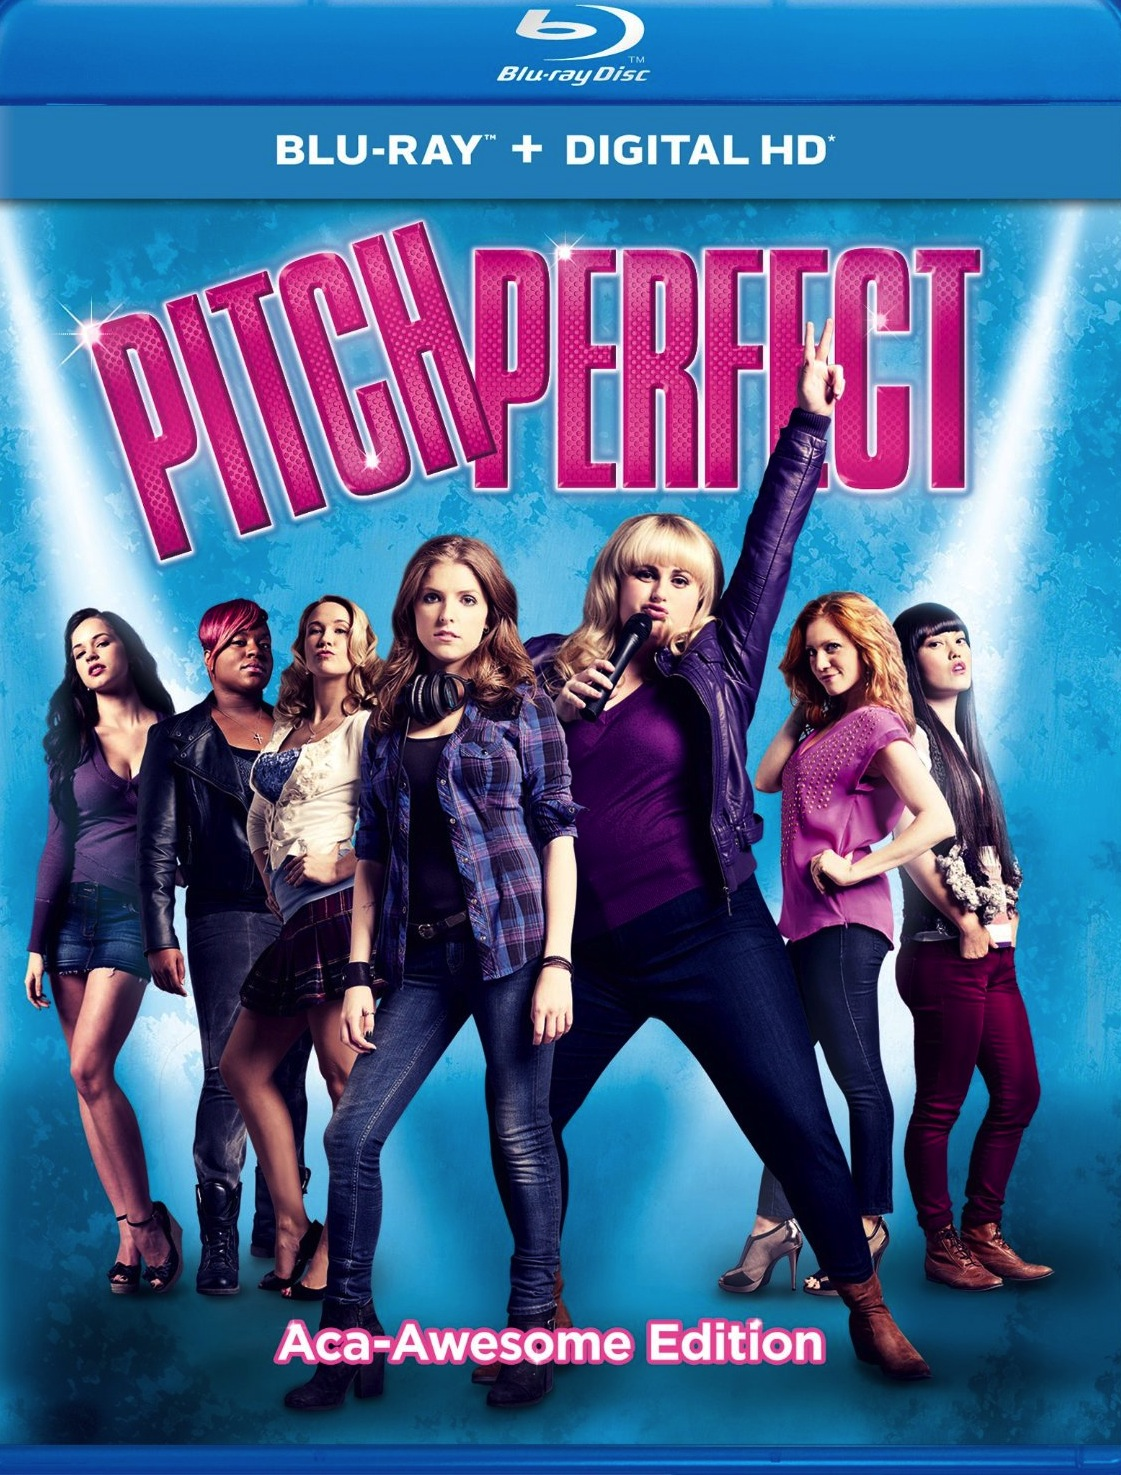 Pitch Perfect Aca Awesome Edition Blu-ray Review